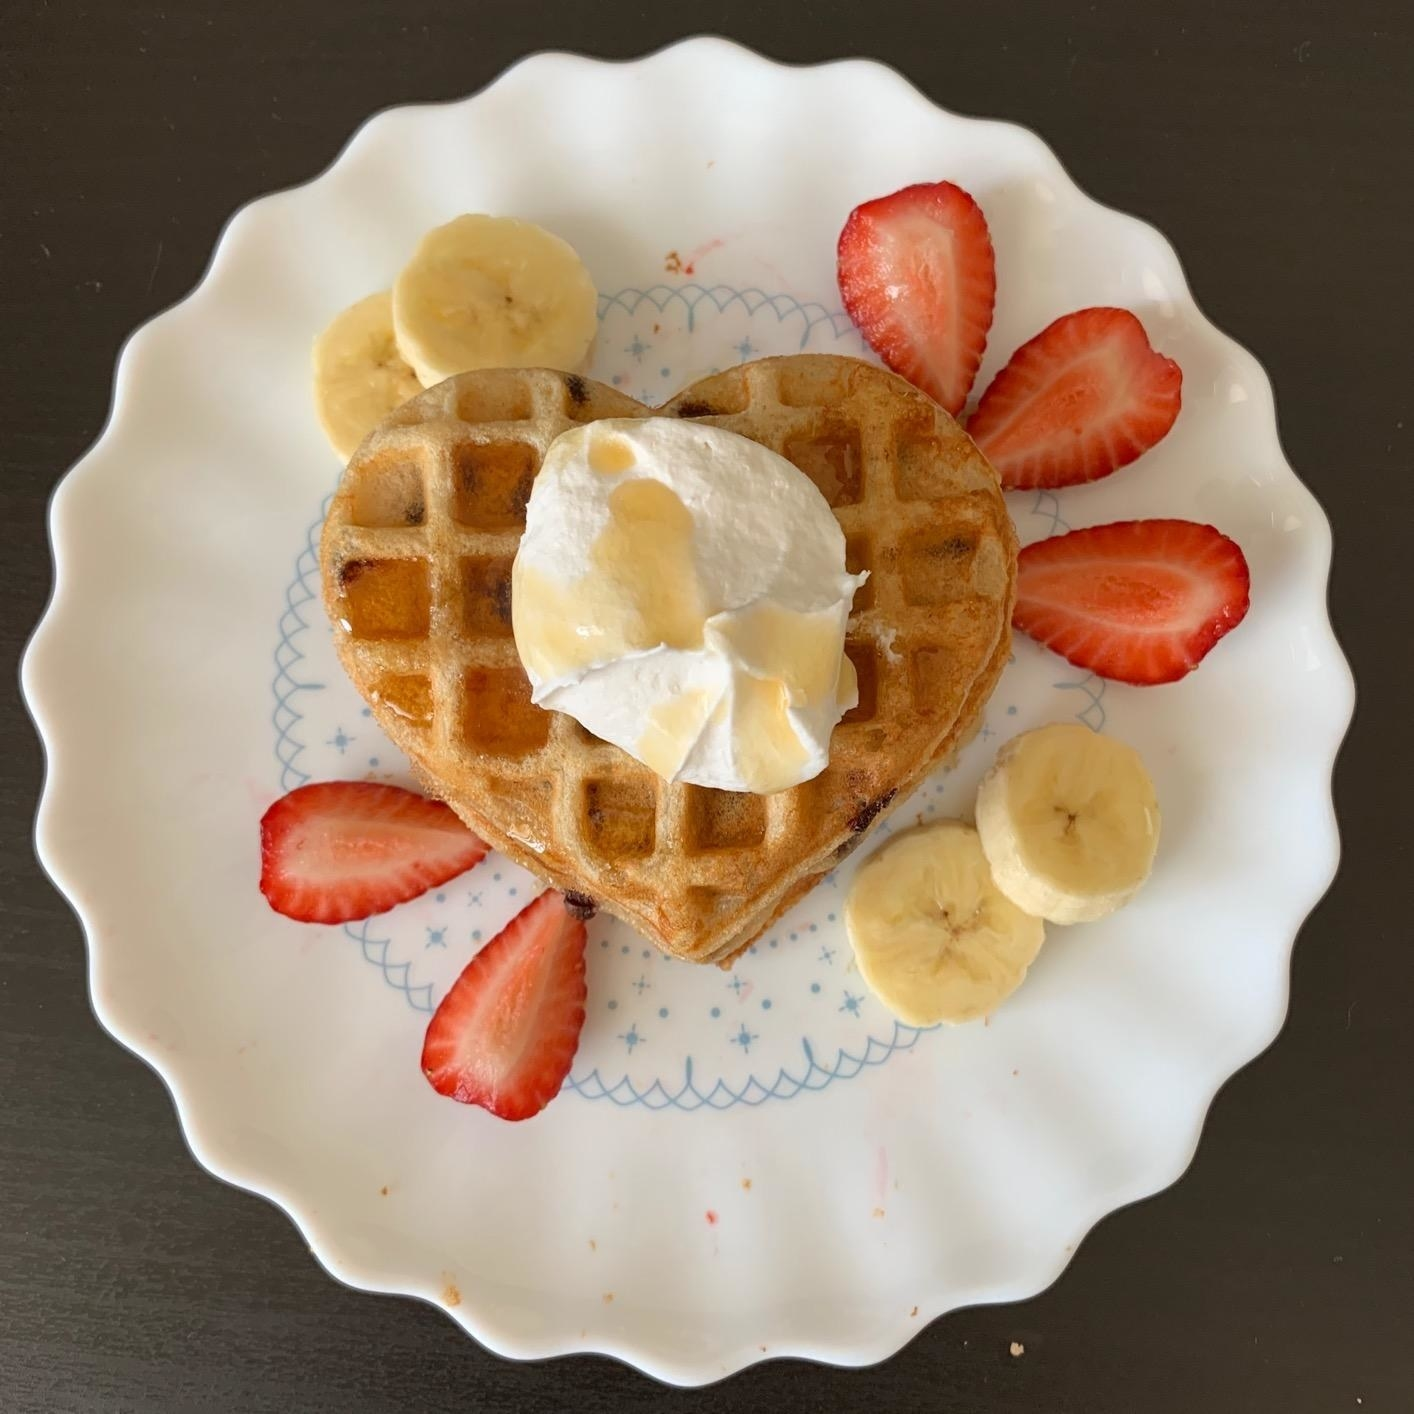 reviewer photo of the heart shaped waffle